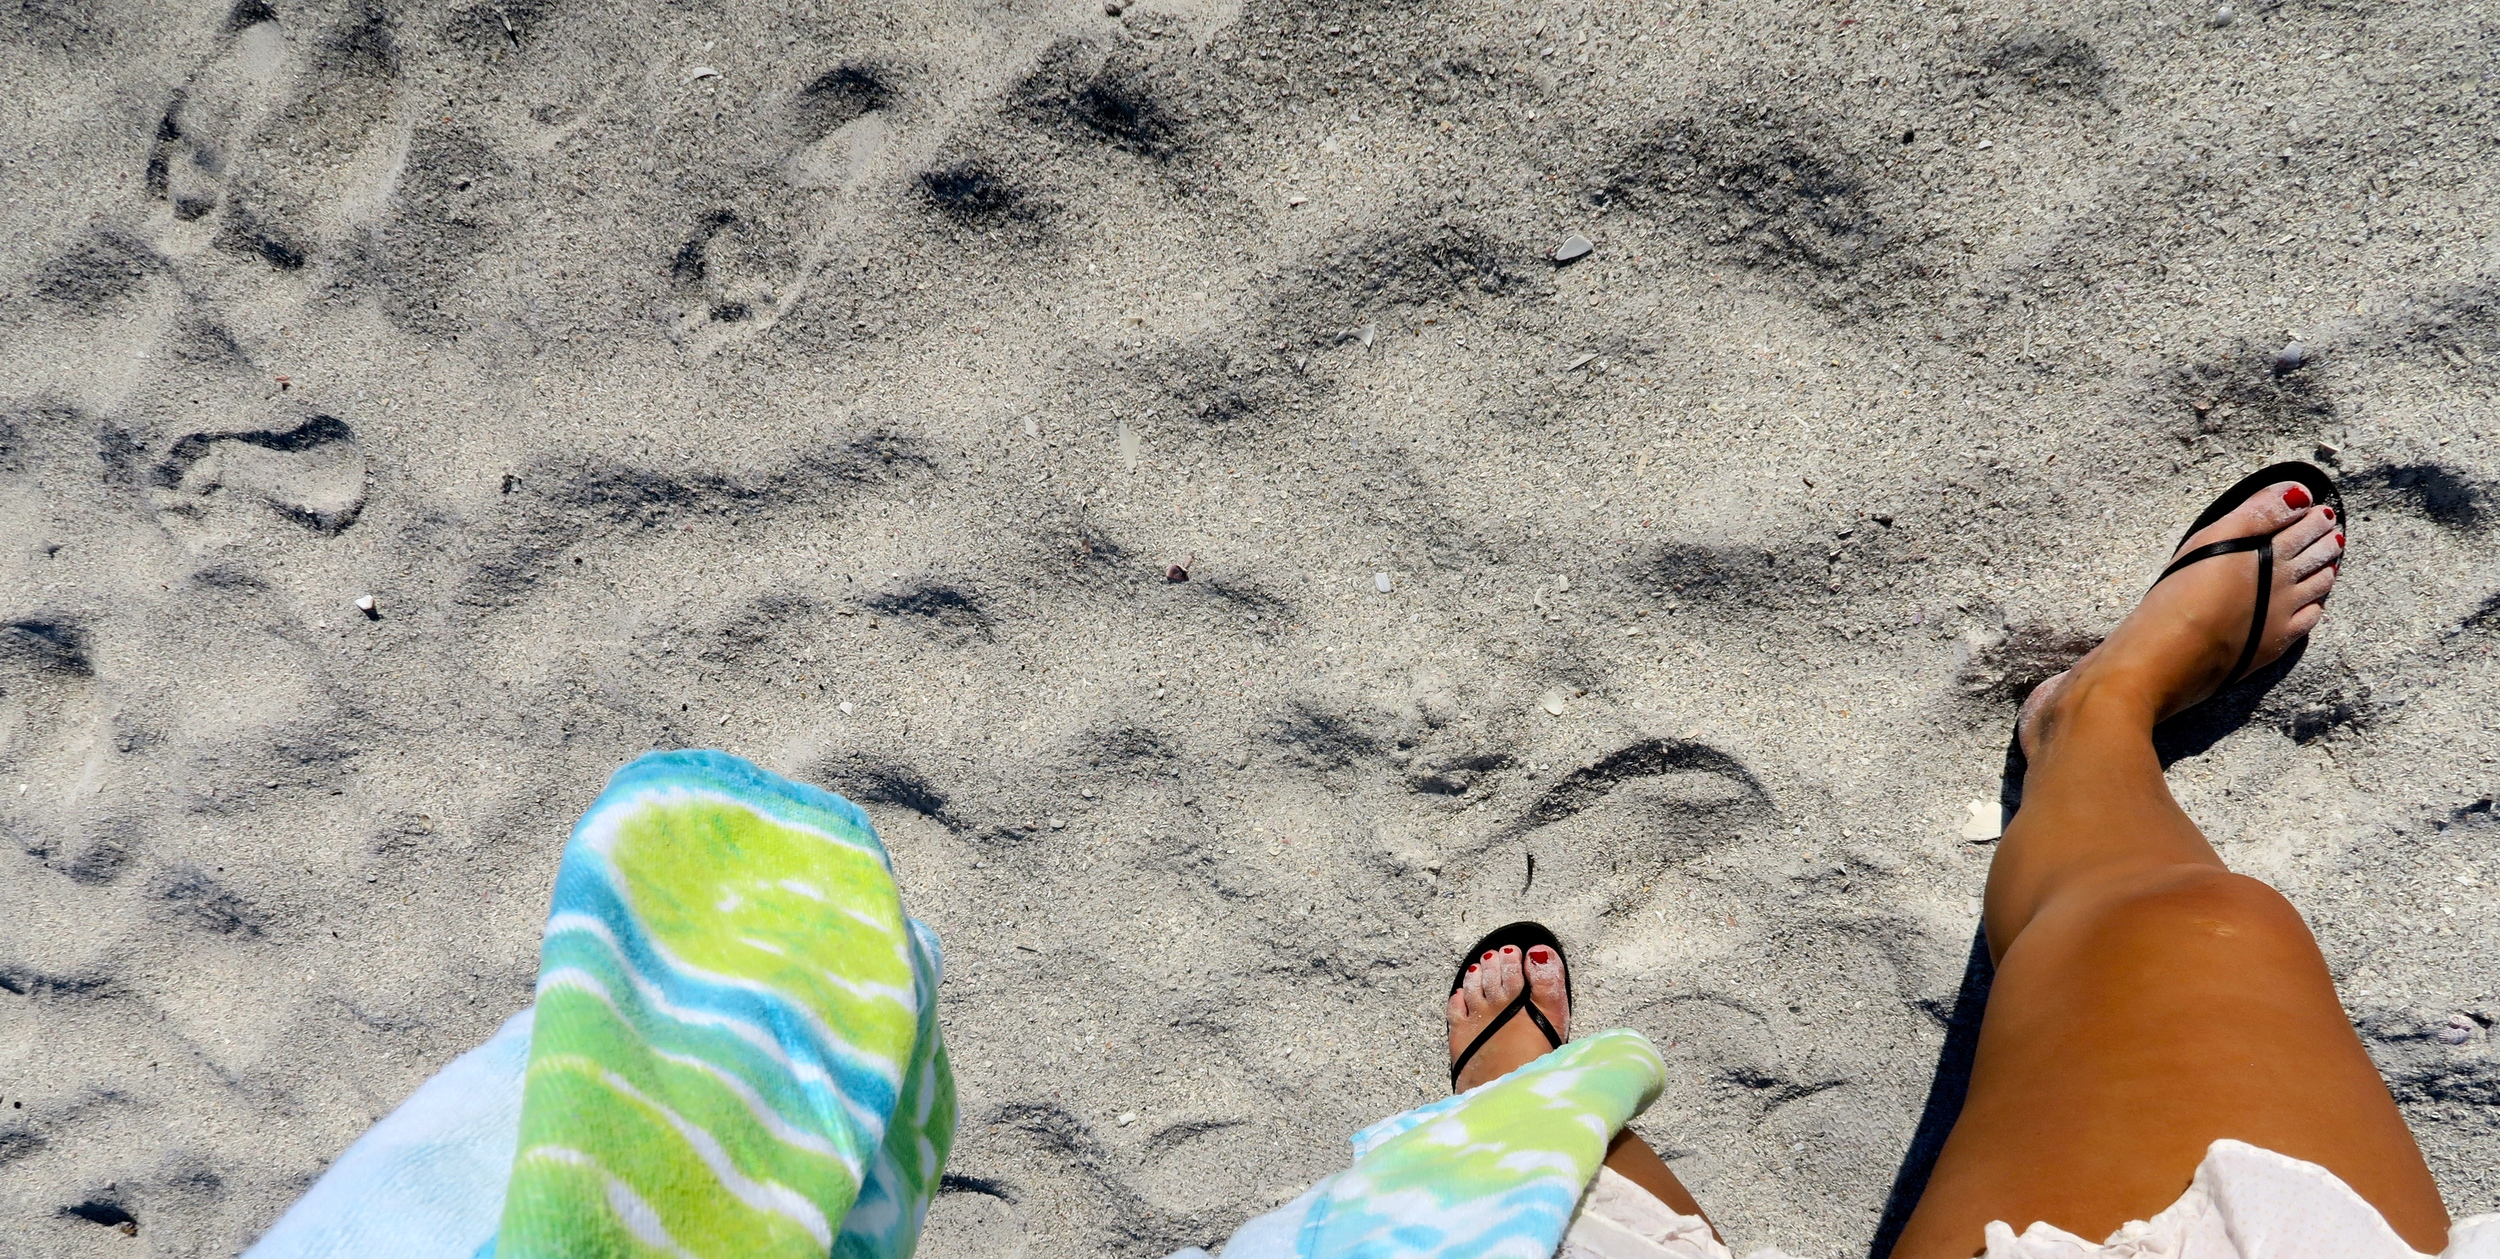 FEET IN THE SAND, ANNA MARIA ISLAND, FL